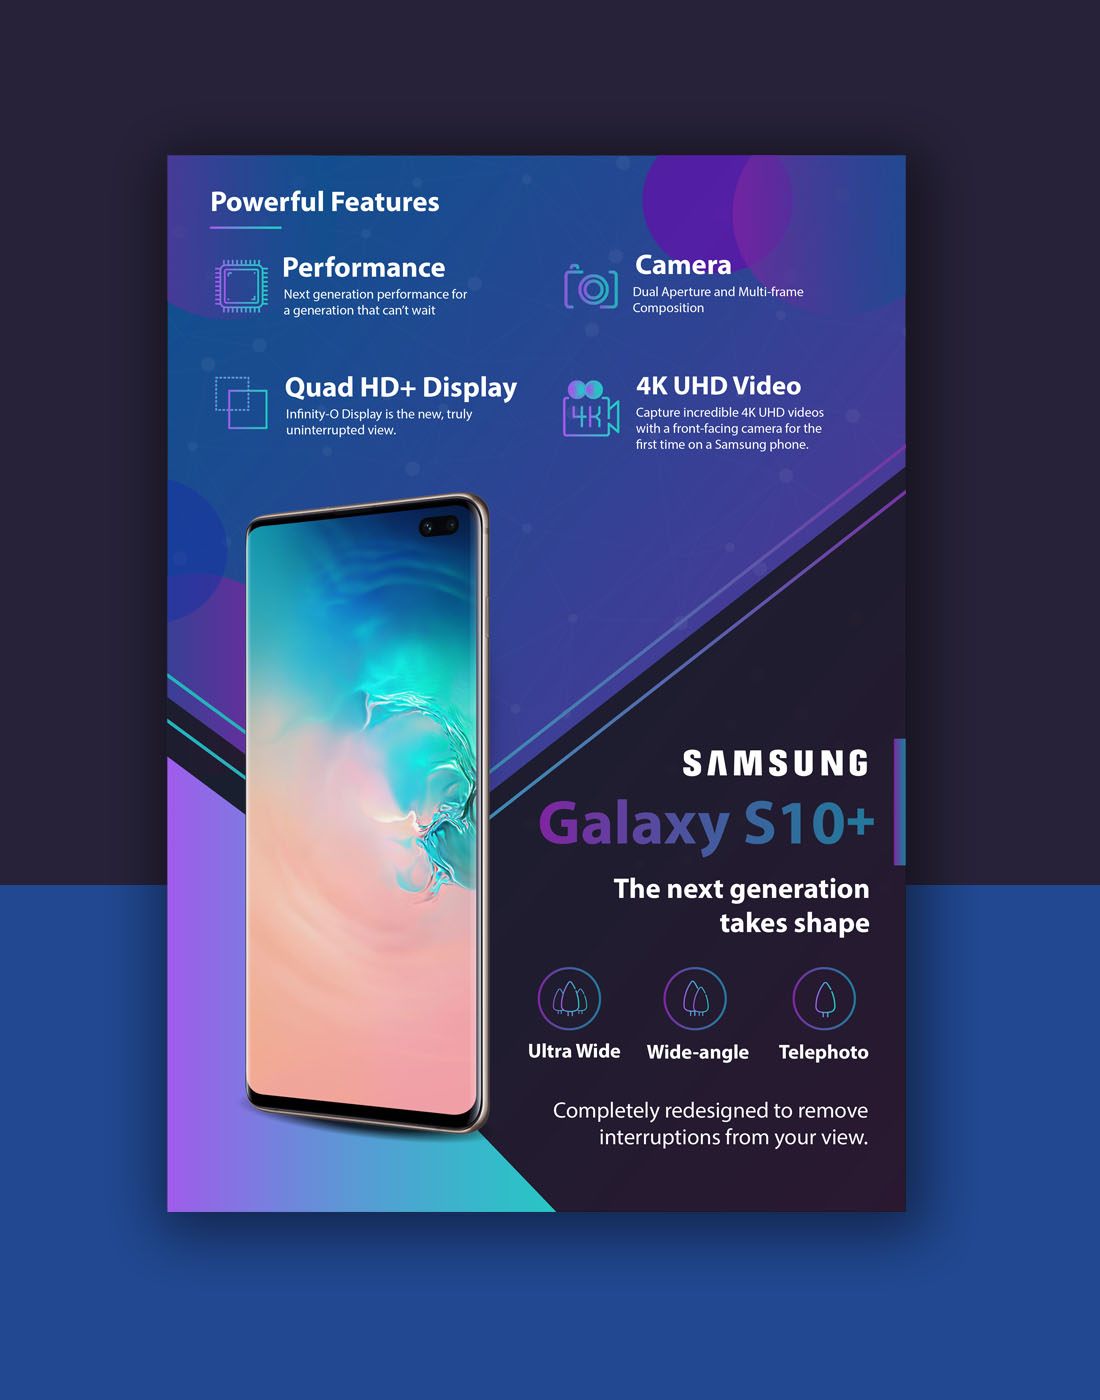 samsung_s10_Features_template